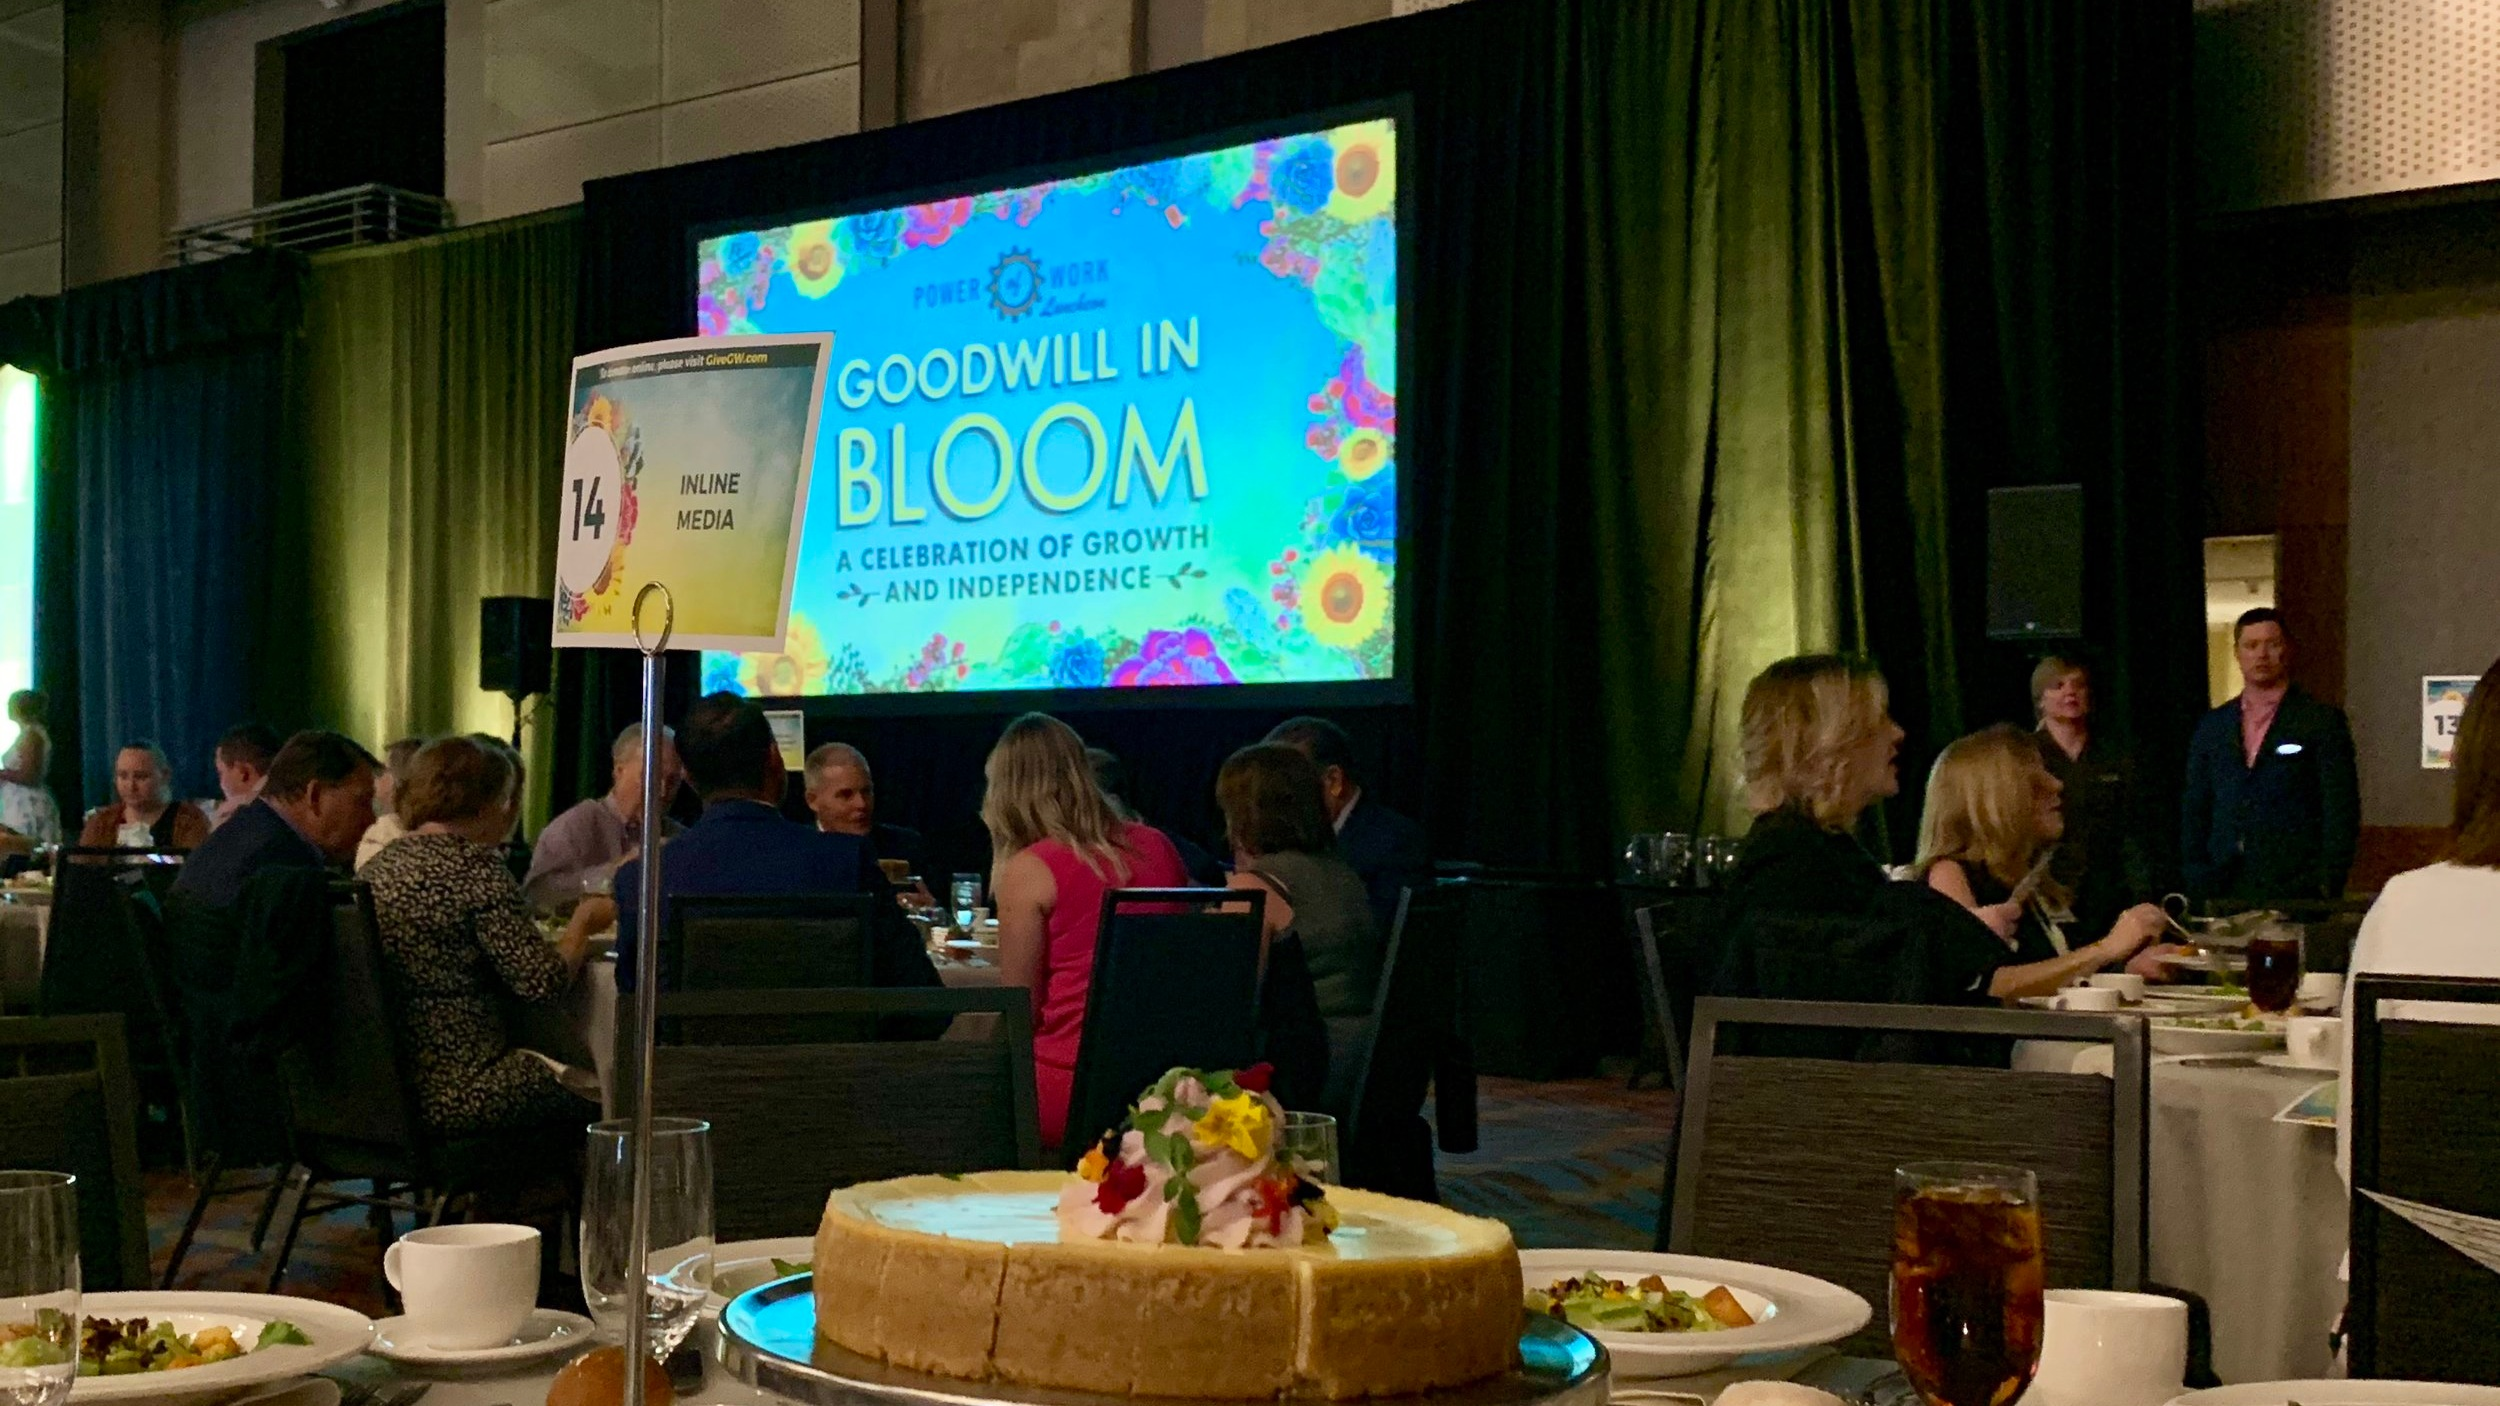 Goodwill in Bloom – How Goodwill Changes Lives Through the Power of Work - 4.11.19 | Susan Penta